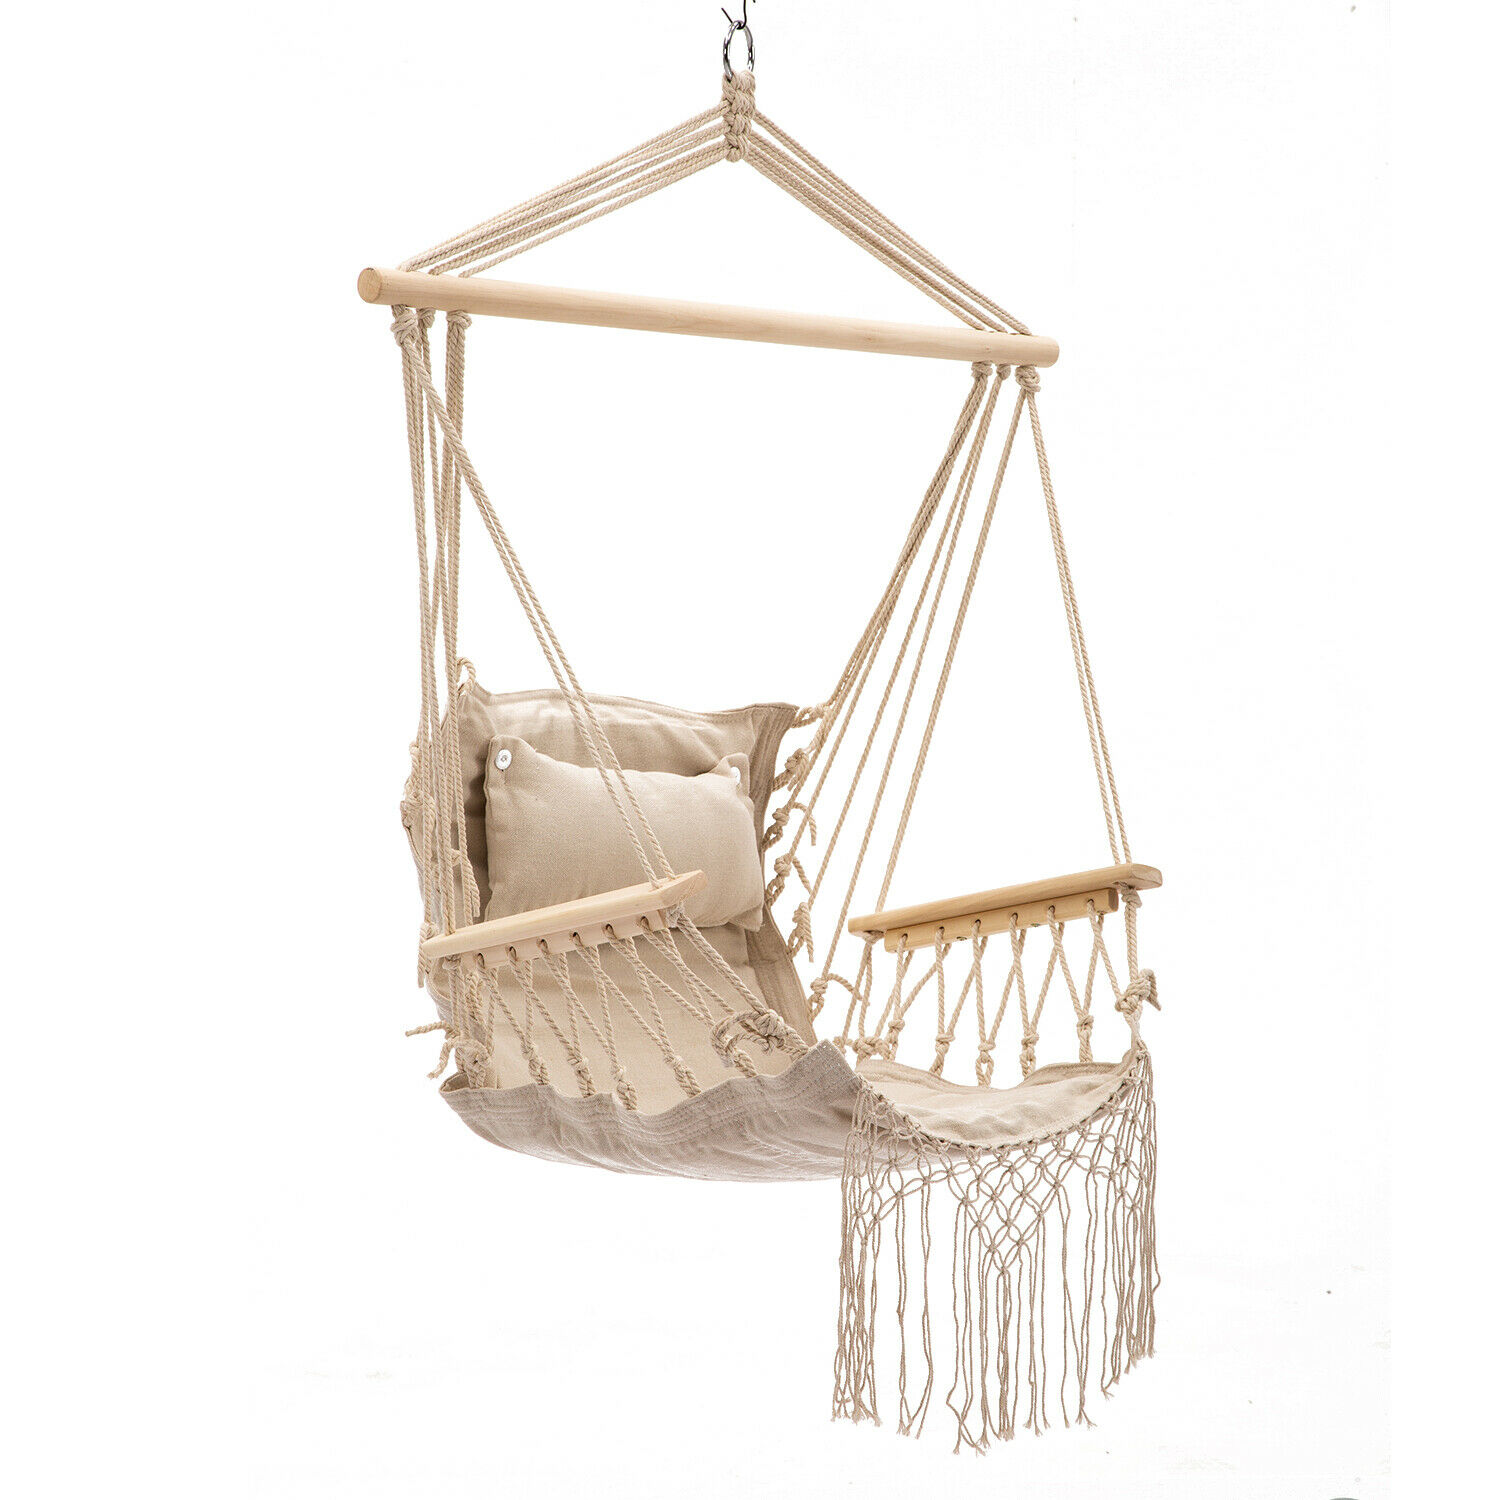 Hanging Rope Hammock Chair Swing Seat, Pillow Included, In